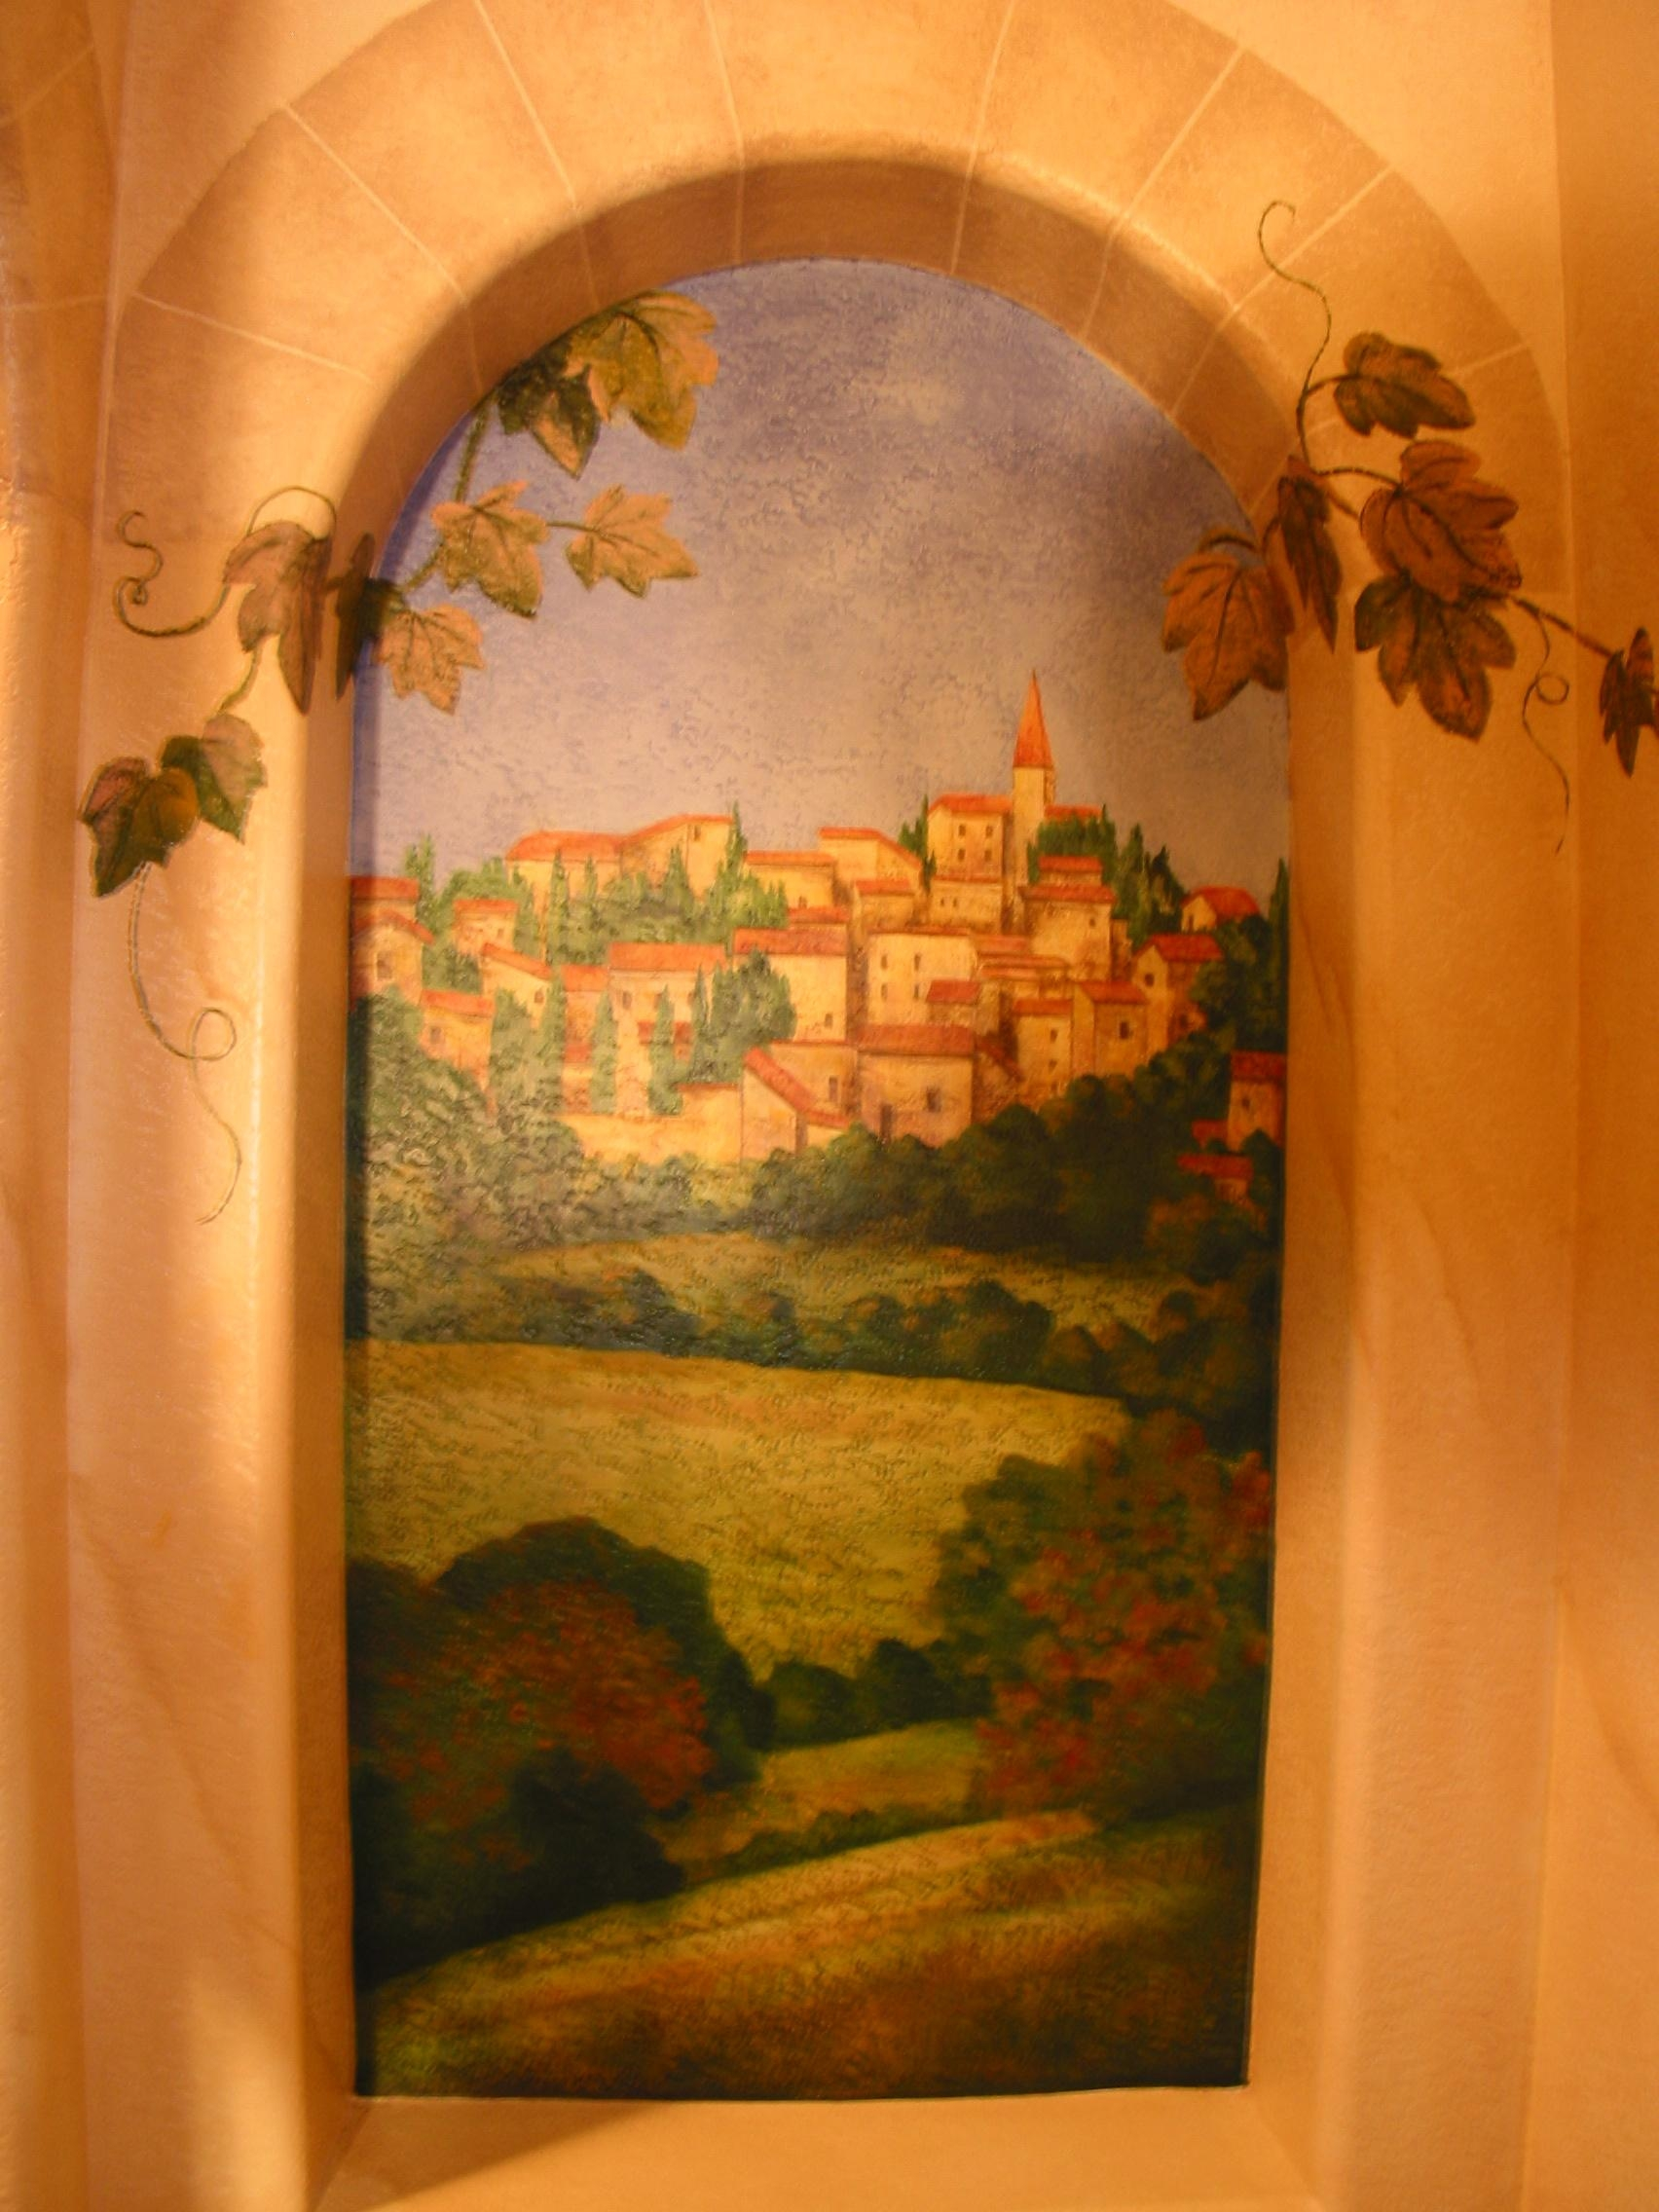 Trompe L'œil Mural ~ Italian Renaissance Style | Ruthie Lowen With Regard To Italian Art Wall Murals (View 10 of 20)